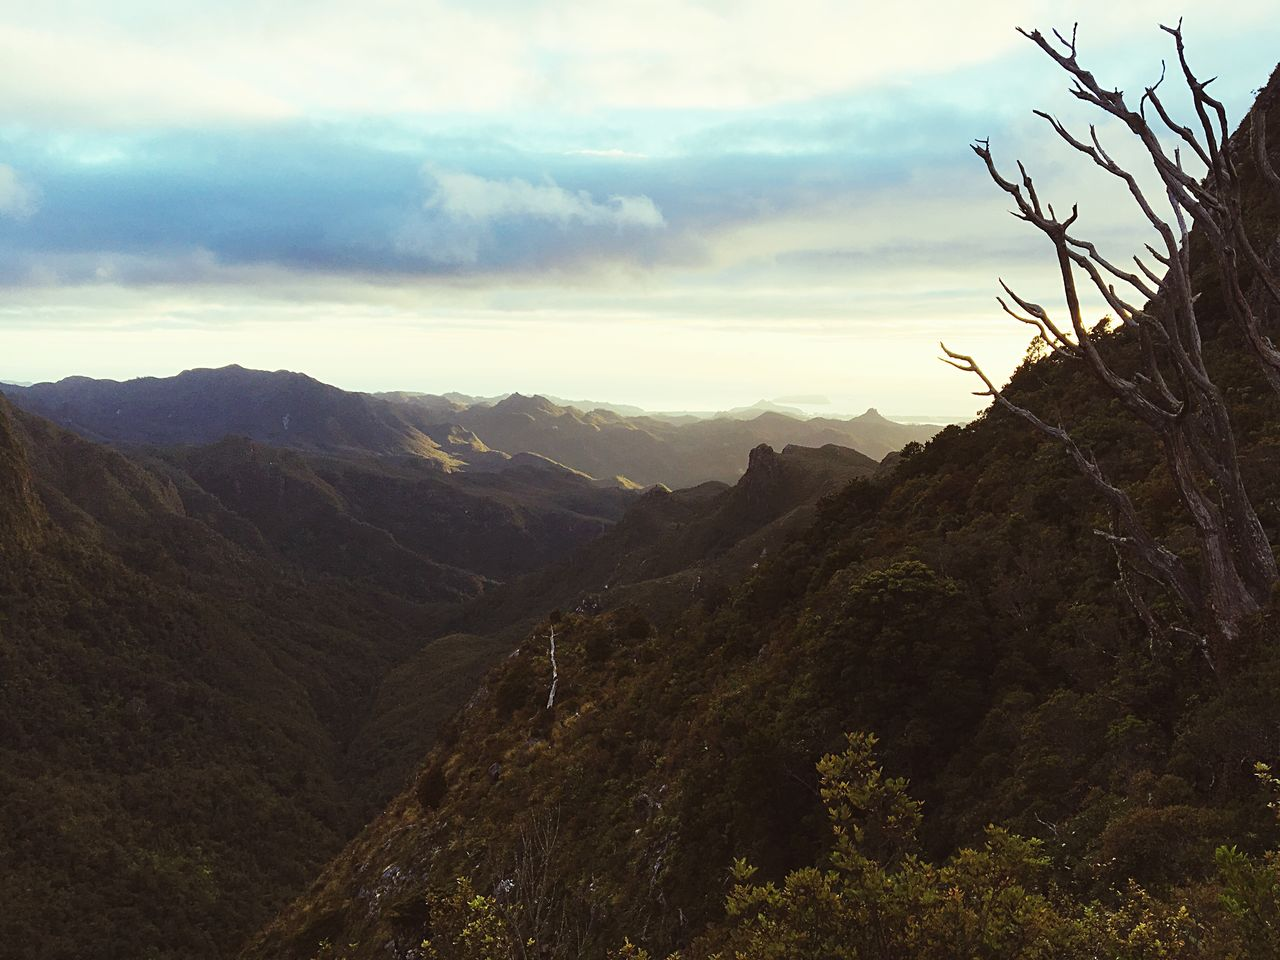 mountain, nature, beauty in nature, sky, tranquil scene, cloud - sky, tranquility, outdoors, scenics, landscape, no people, day